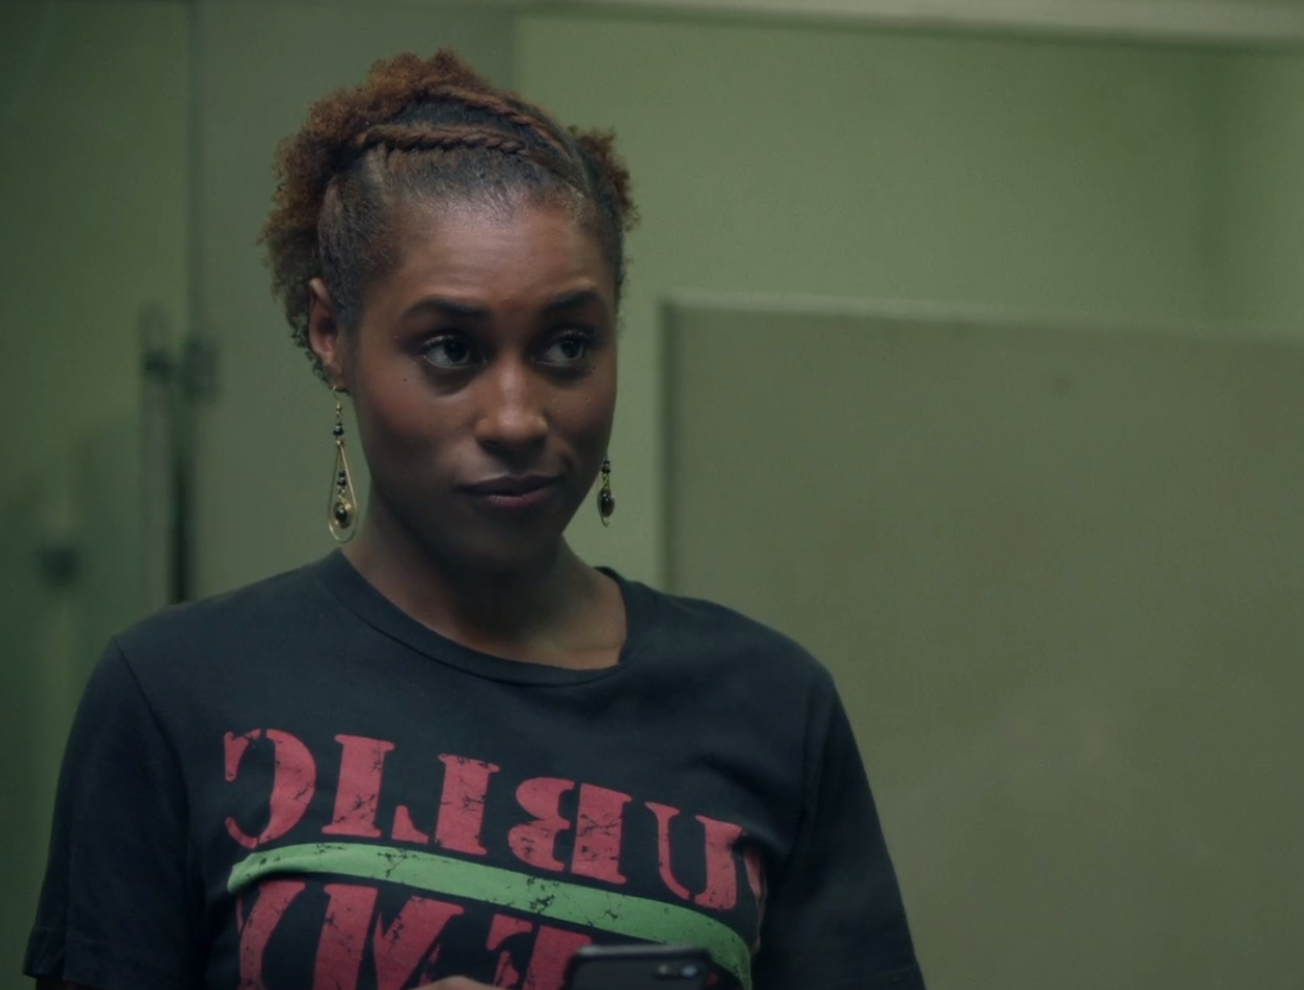 Flat twist half up hairstyle Issa Rae Wore on HBO Insecure Hella Shook